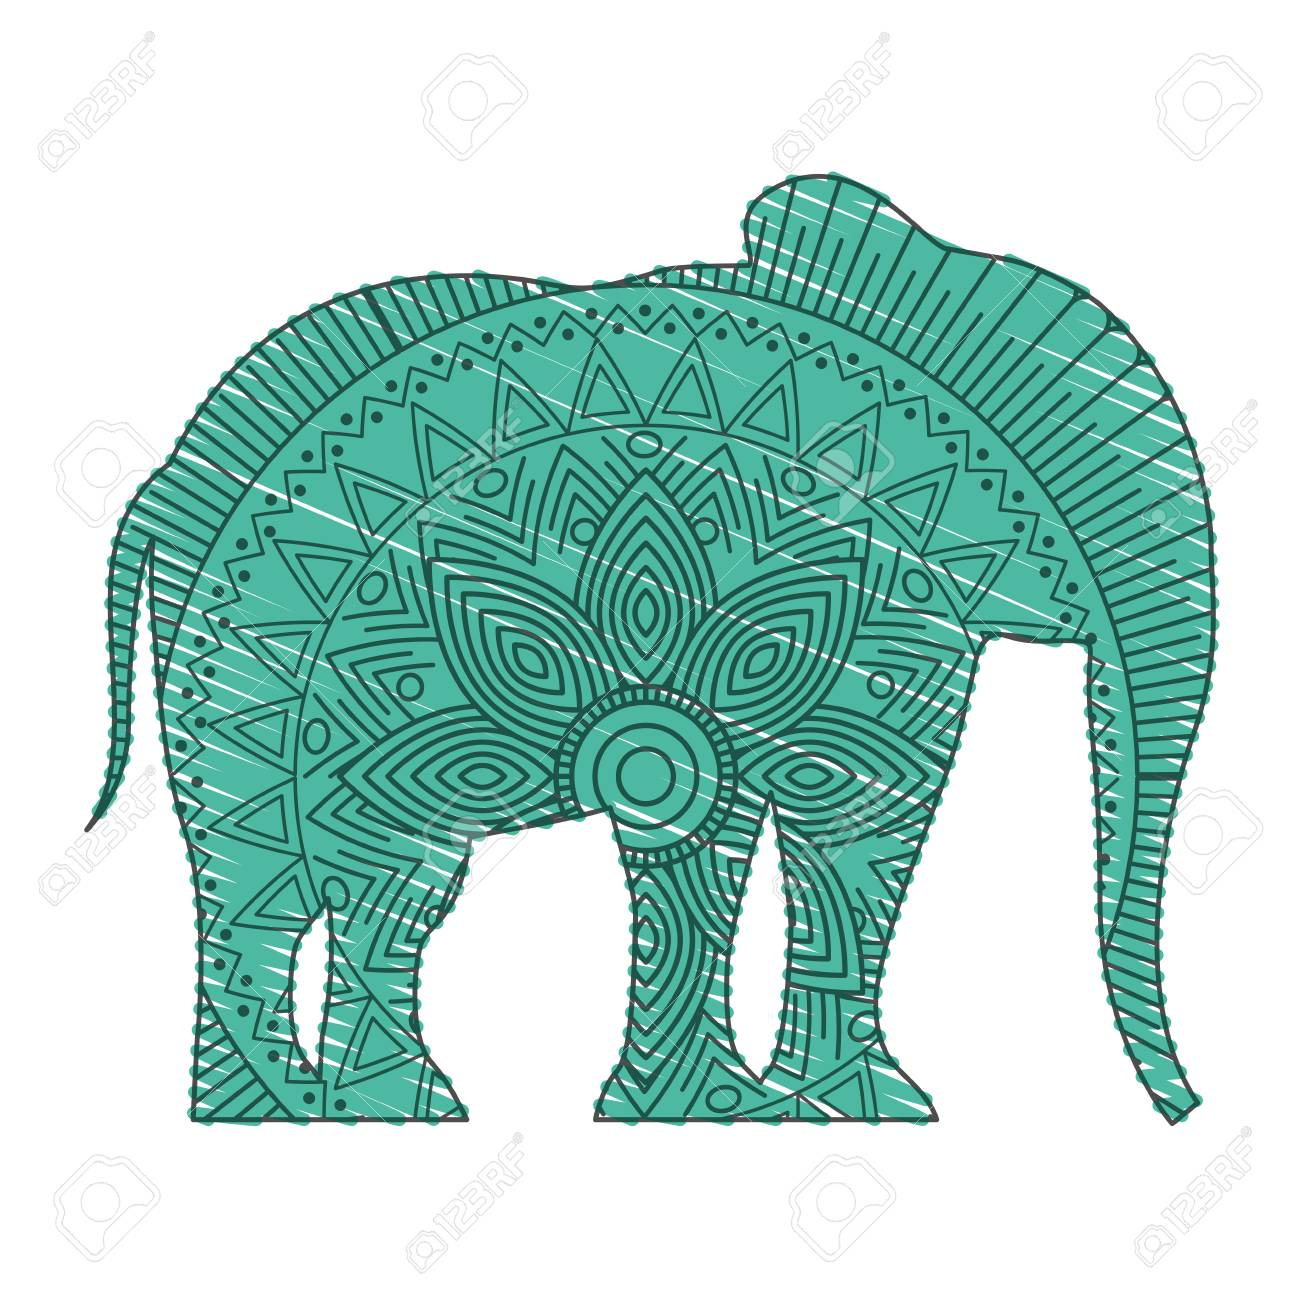 Hand Drawn For Adult Coloring Pages With Elephant Vector Illustration